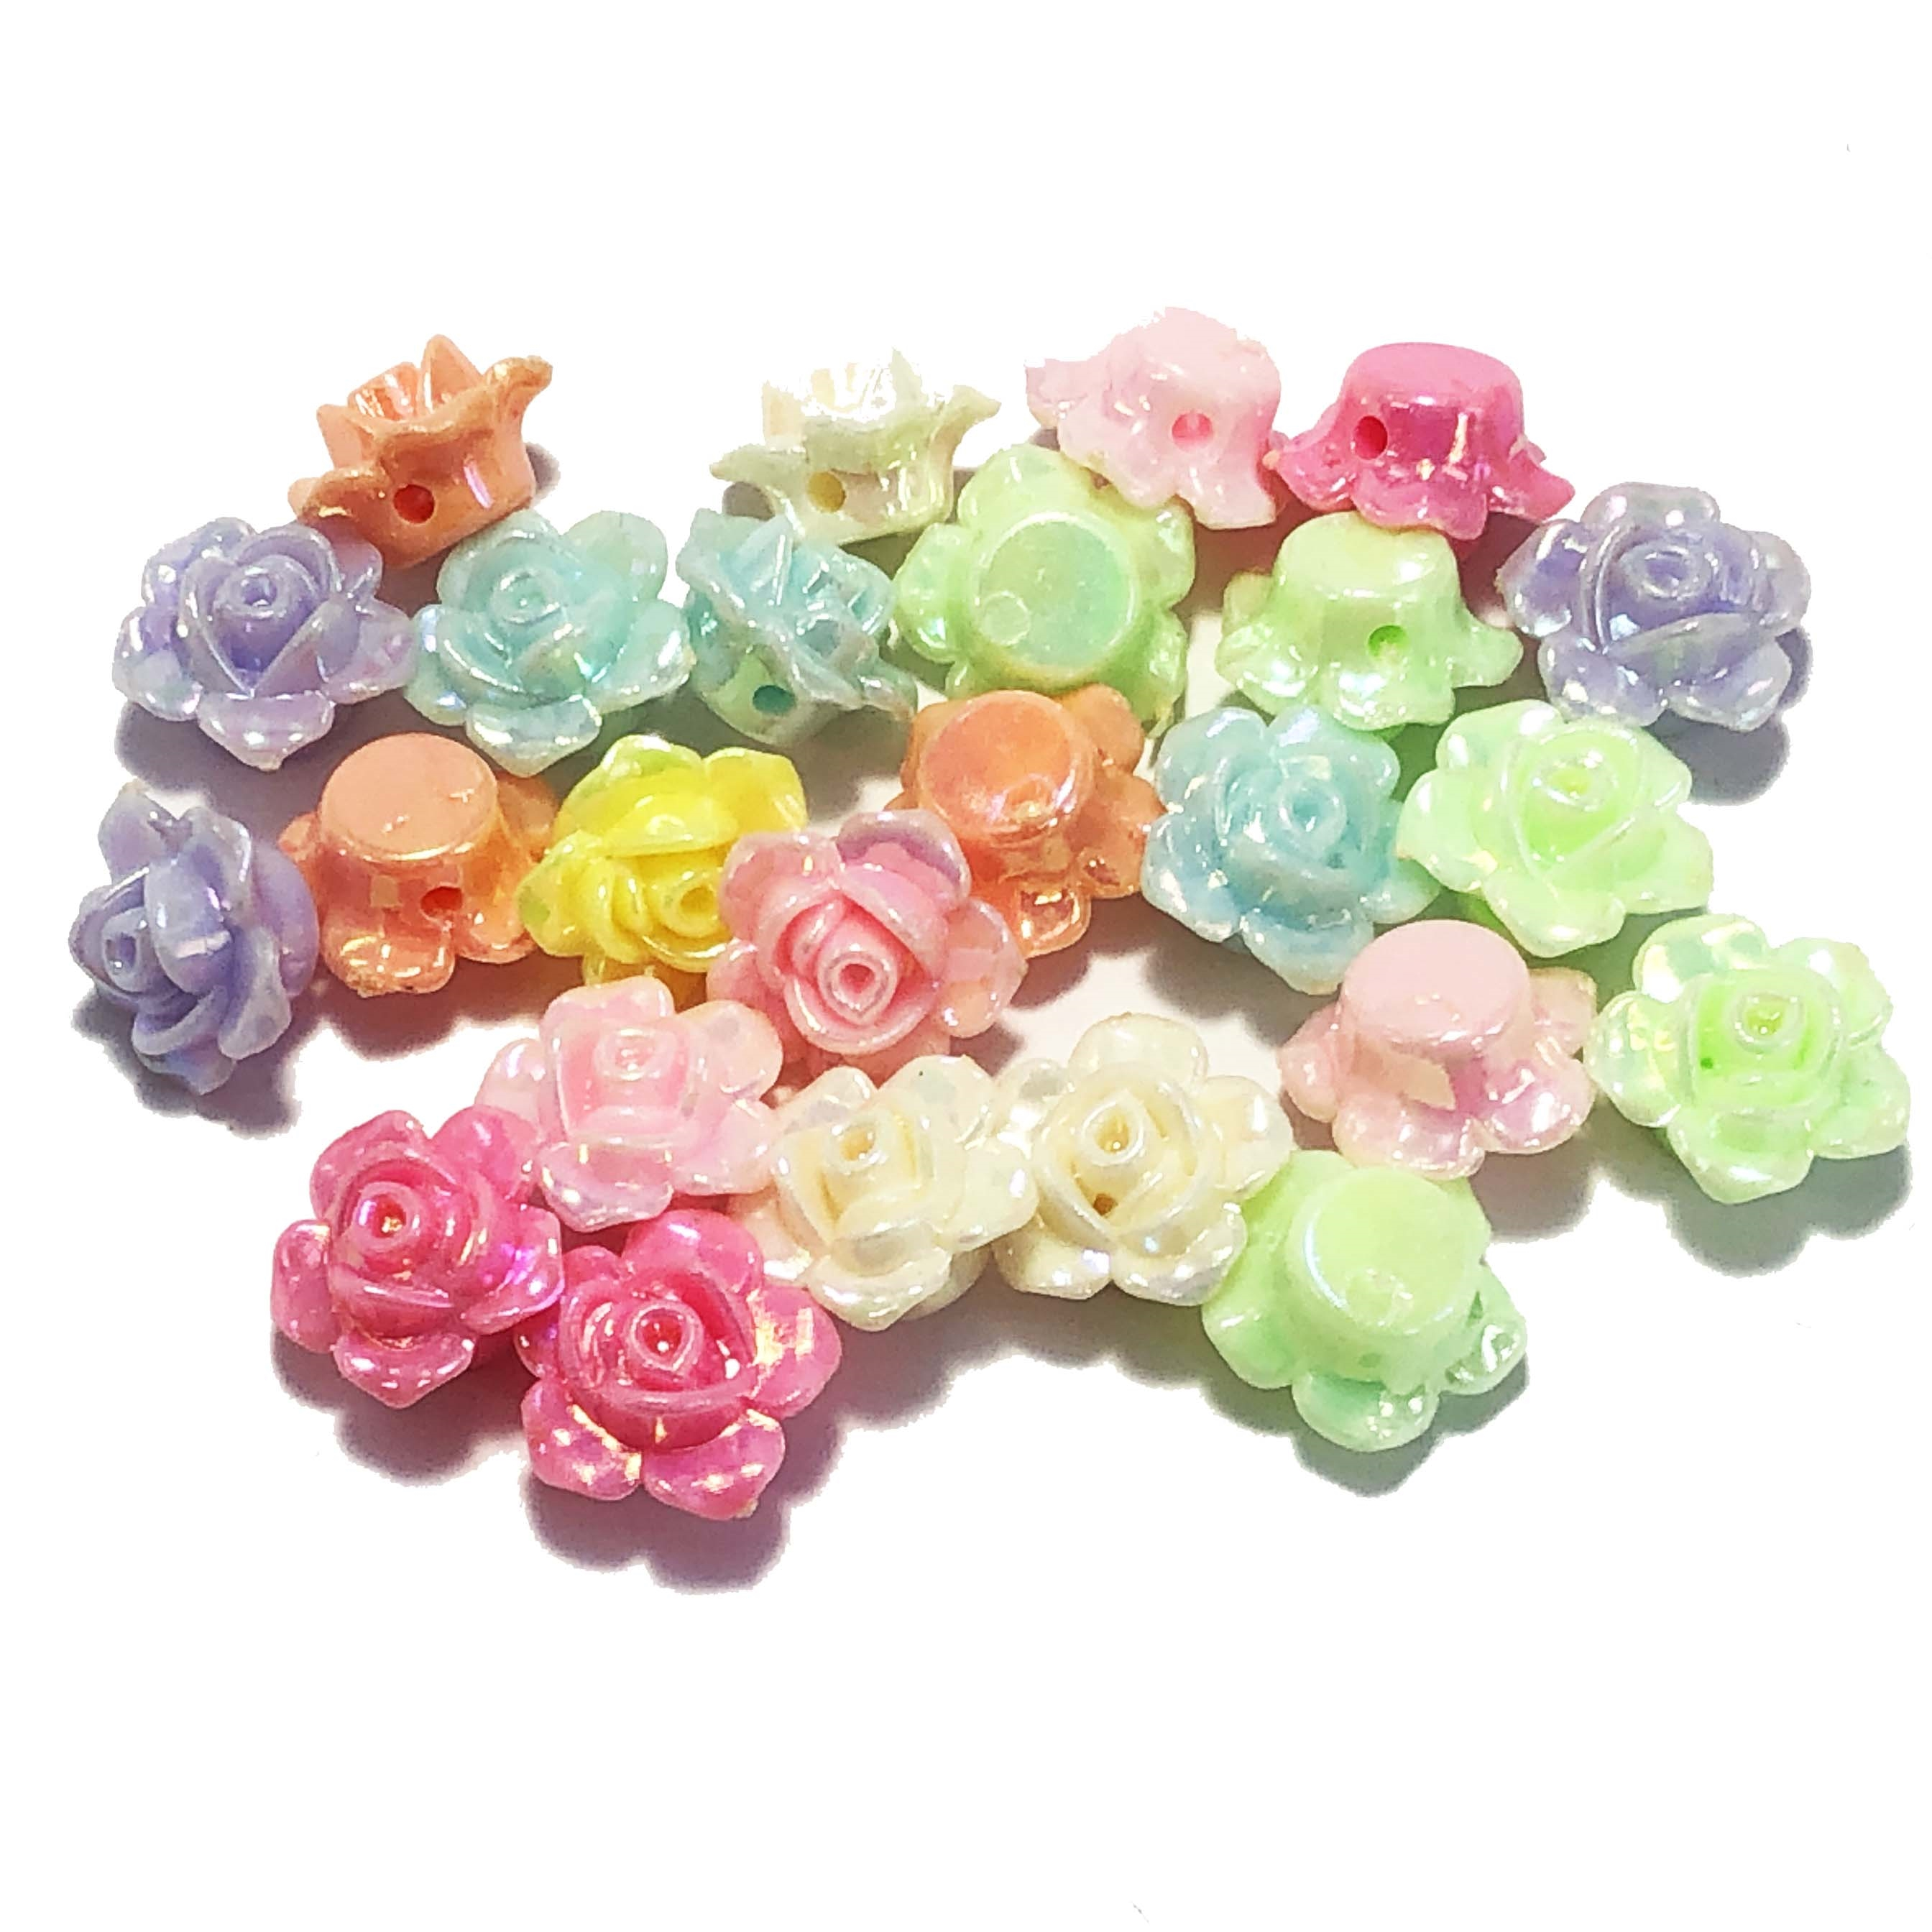 opaque acrylic beads, multi-color, flowers, 09583, acrylic, plastic rose beads, 13mm rose beads, 13mm, molded beads, carved rose, B'sue Boutiques, jewelry supplies, jewelry making, iridescent, AB beads, aurora borealis